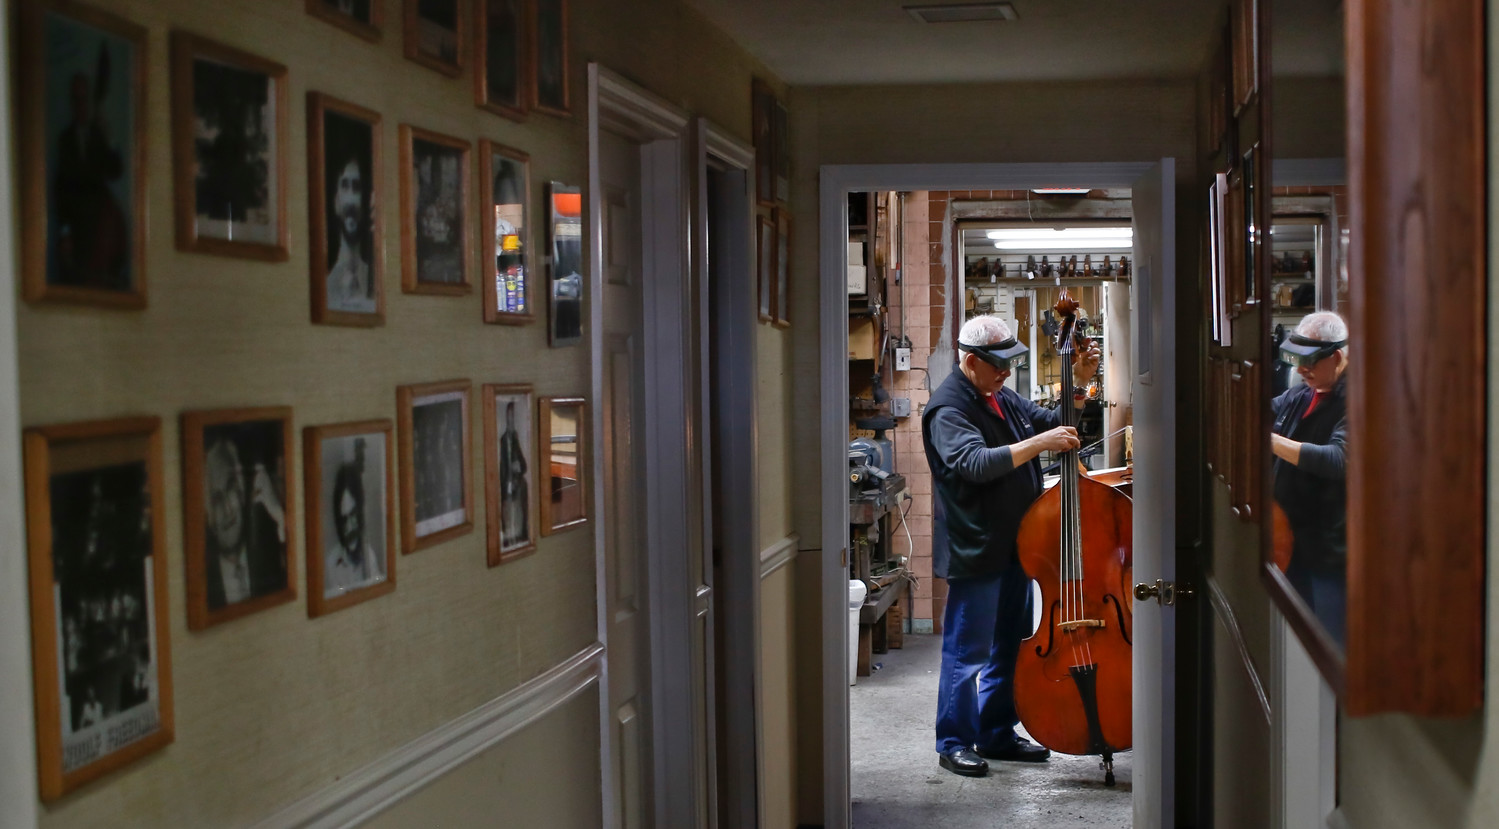 Jake Cradilas, a shop foreman who has worked at Kolstein's for nearly 25 years, gave a newly repaired bass its final evaluation.